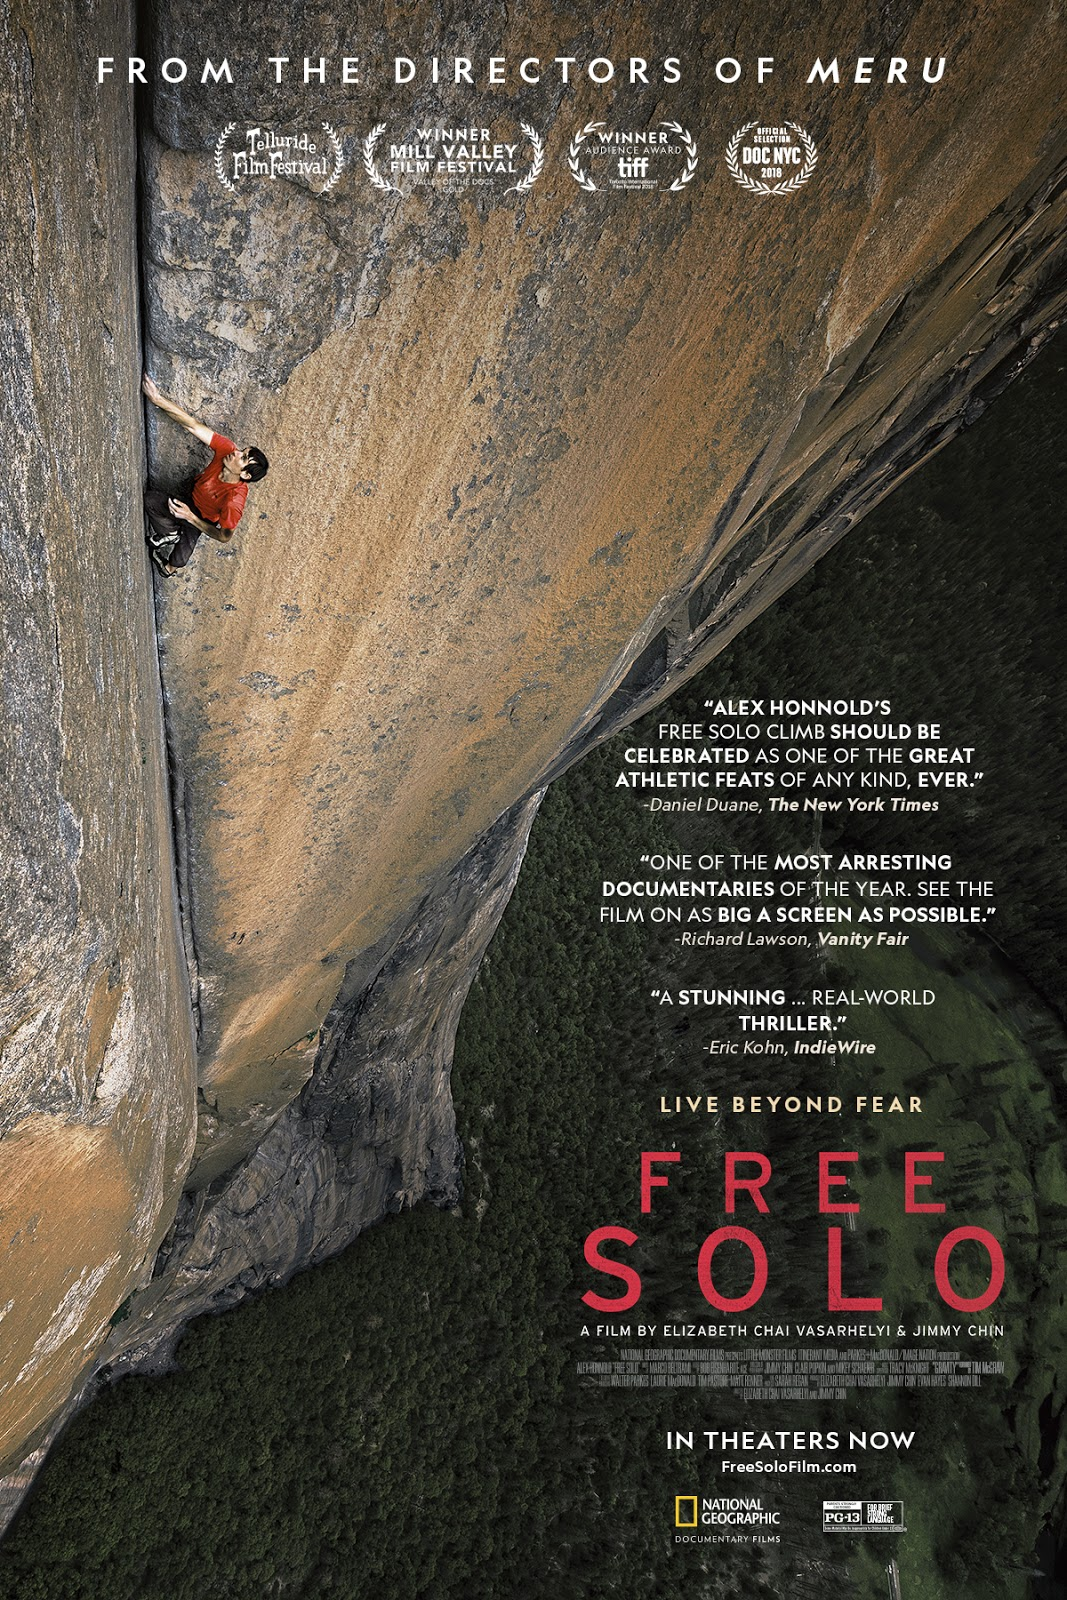 https://www.nationalgeographic.com/films/free-solo/